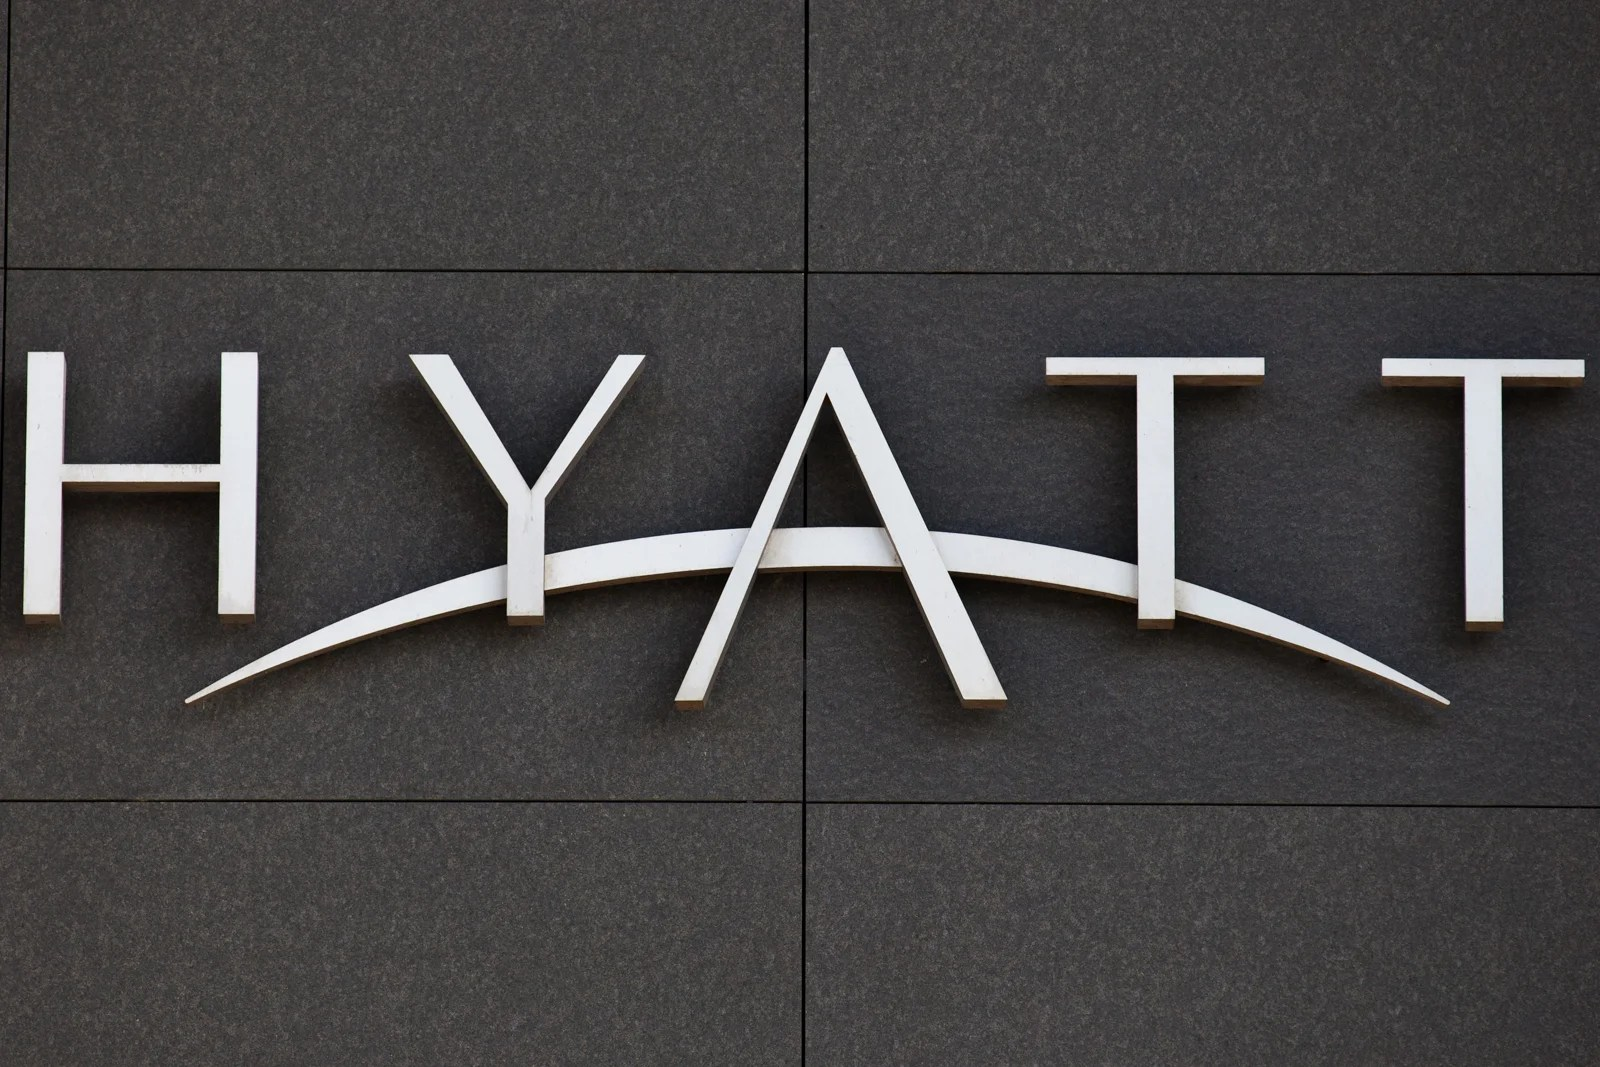 The ultimate guide to Hyatt hotel brands